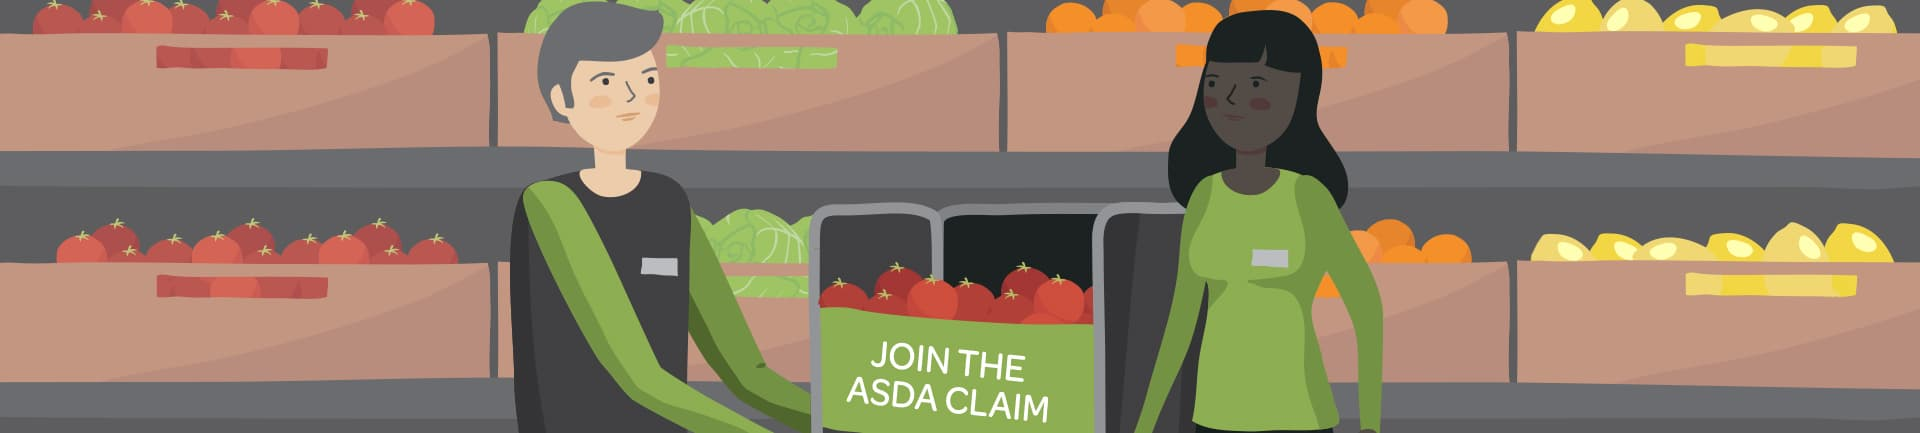 Join the Asda Claim